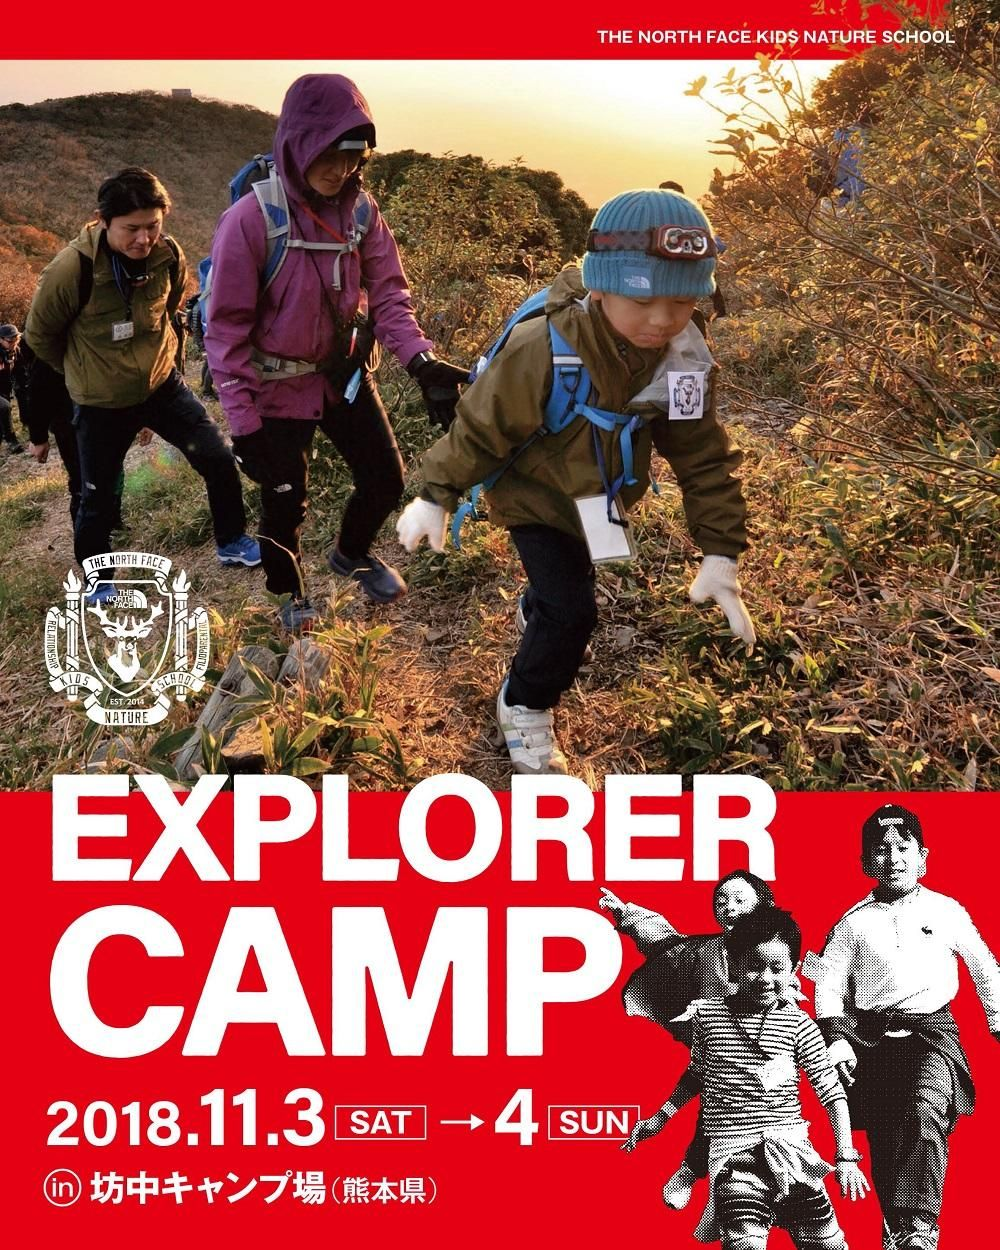 【THE NORTH FACE KIDS NATURE SCHOOL EXPLORER CAMP in ASO】